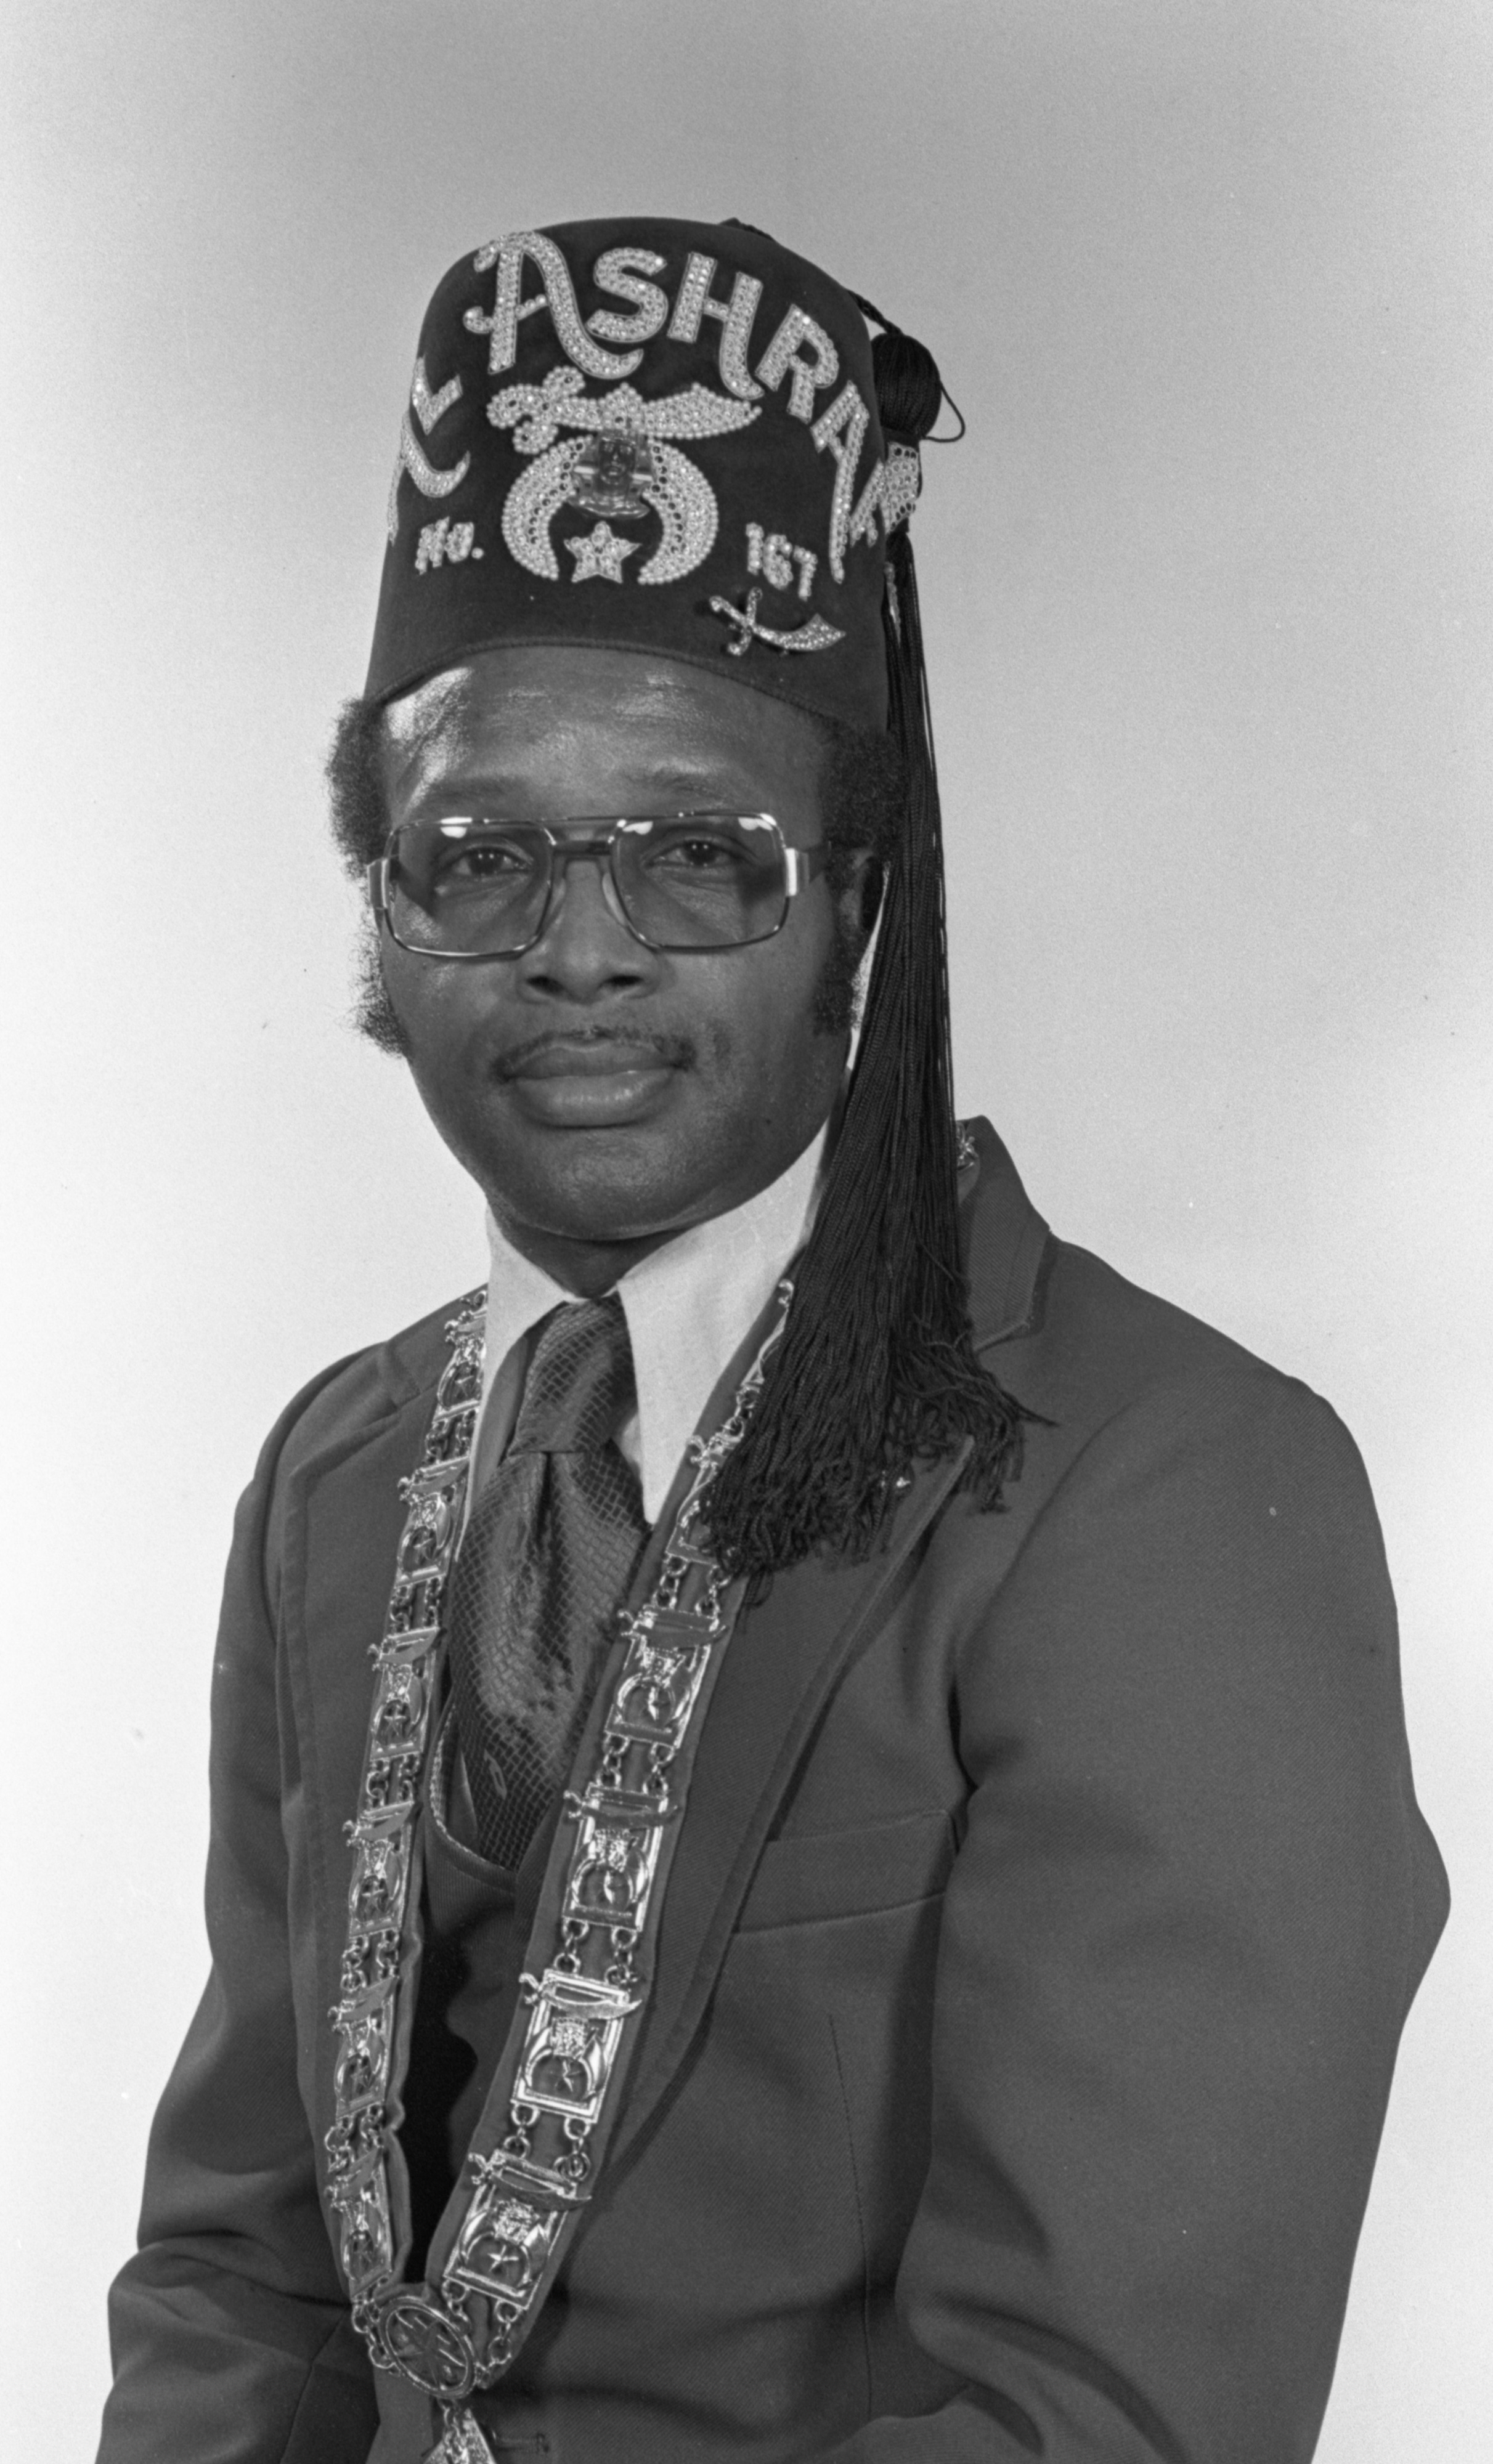 Horace C. Williams - Newly Installed Illustrious Potentate Of Al Ashraf Temple No. 167, December 1978 image